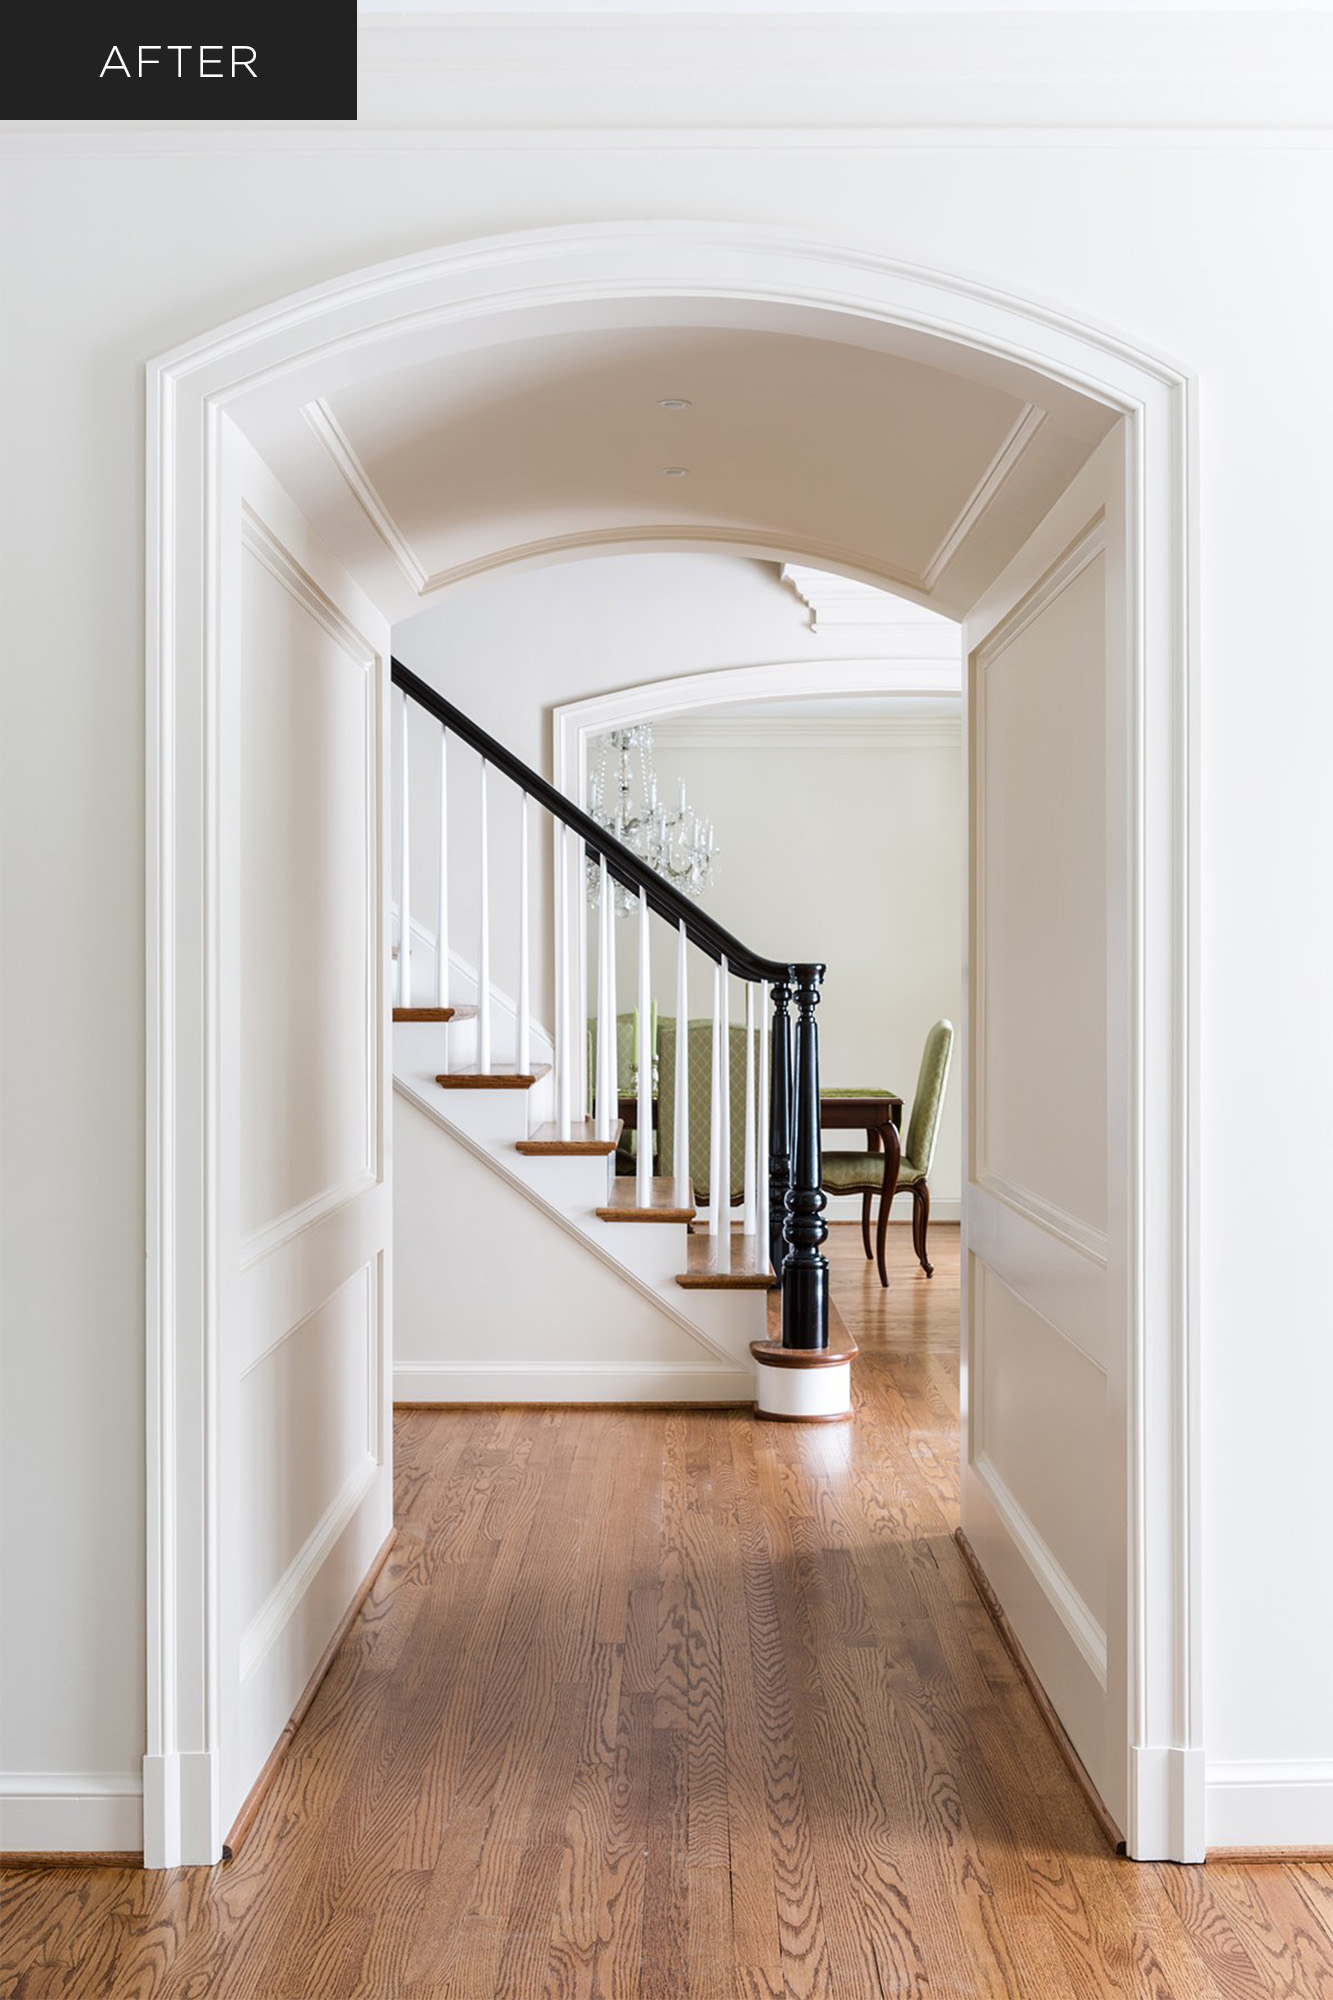 Home with curved archway hall and milled newel post on stairs